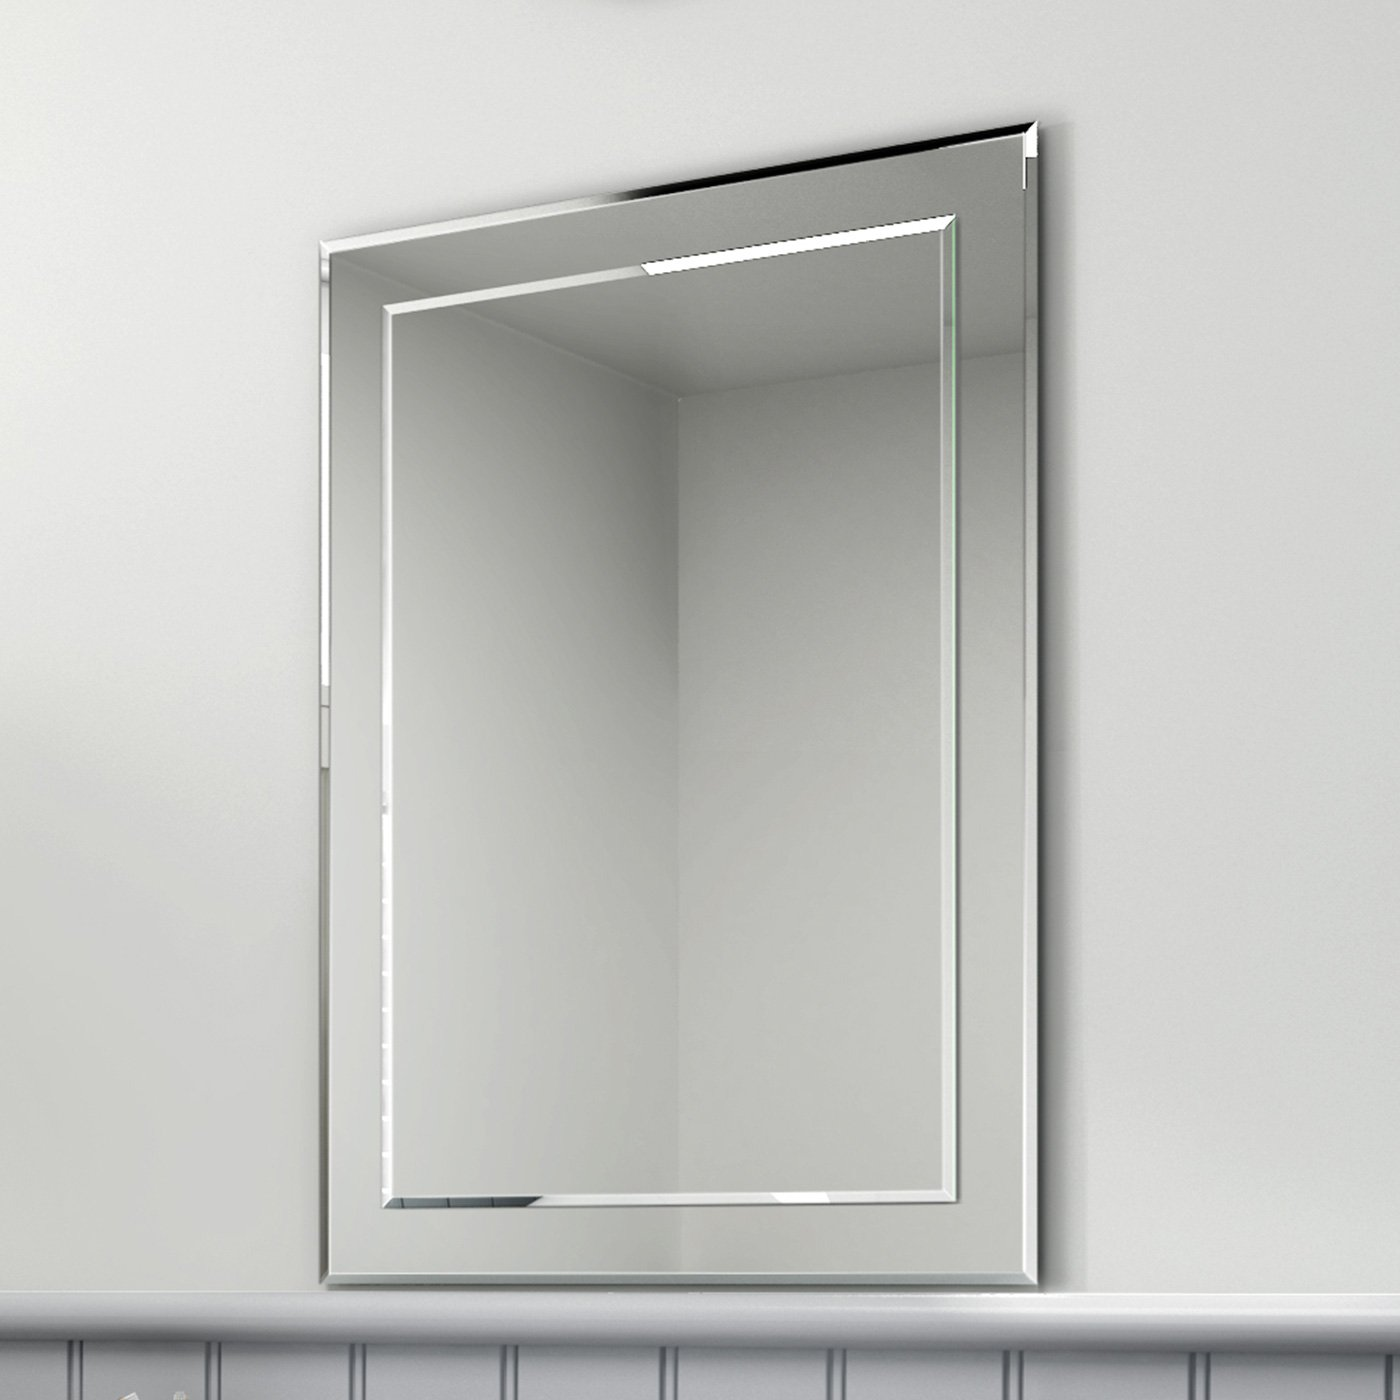 500 X 700 Mm Rectangular Bevelled Designer Bathroom Wall Mirror MC148